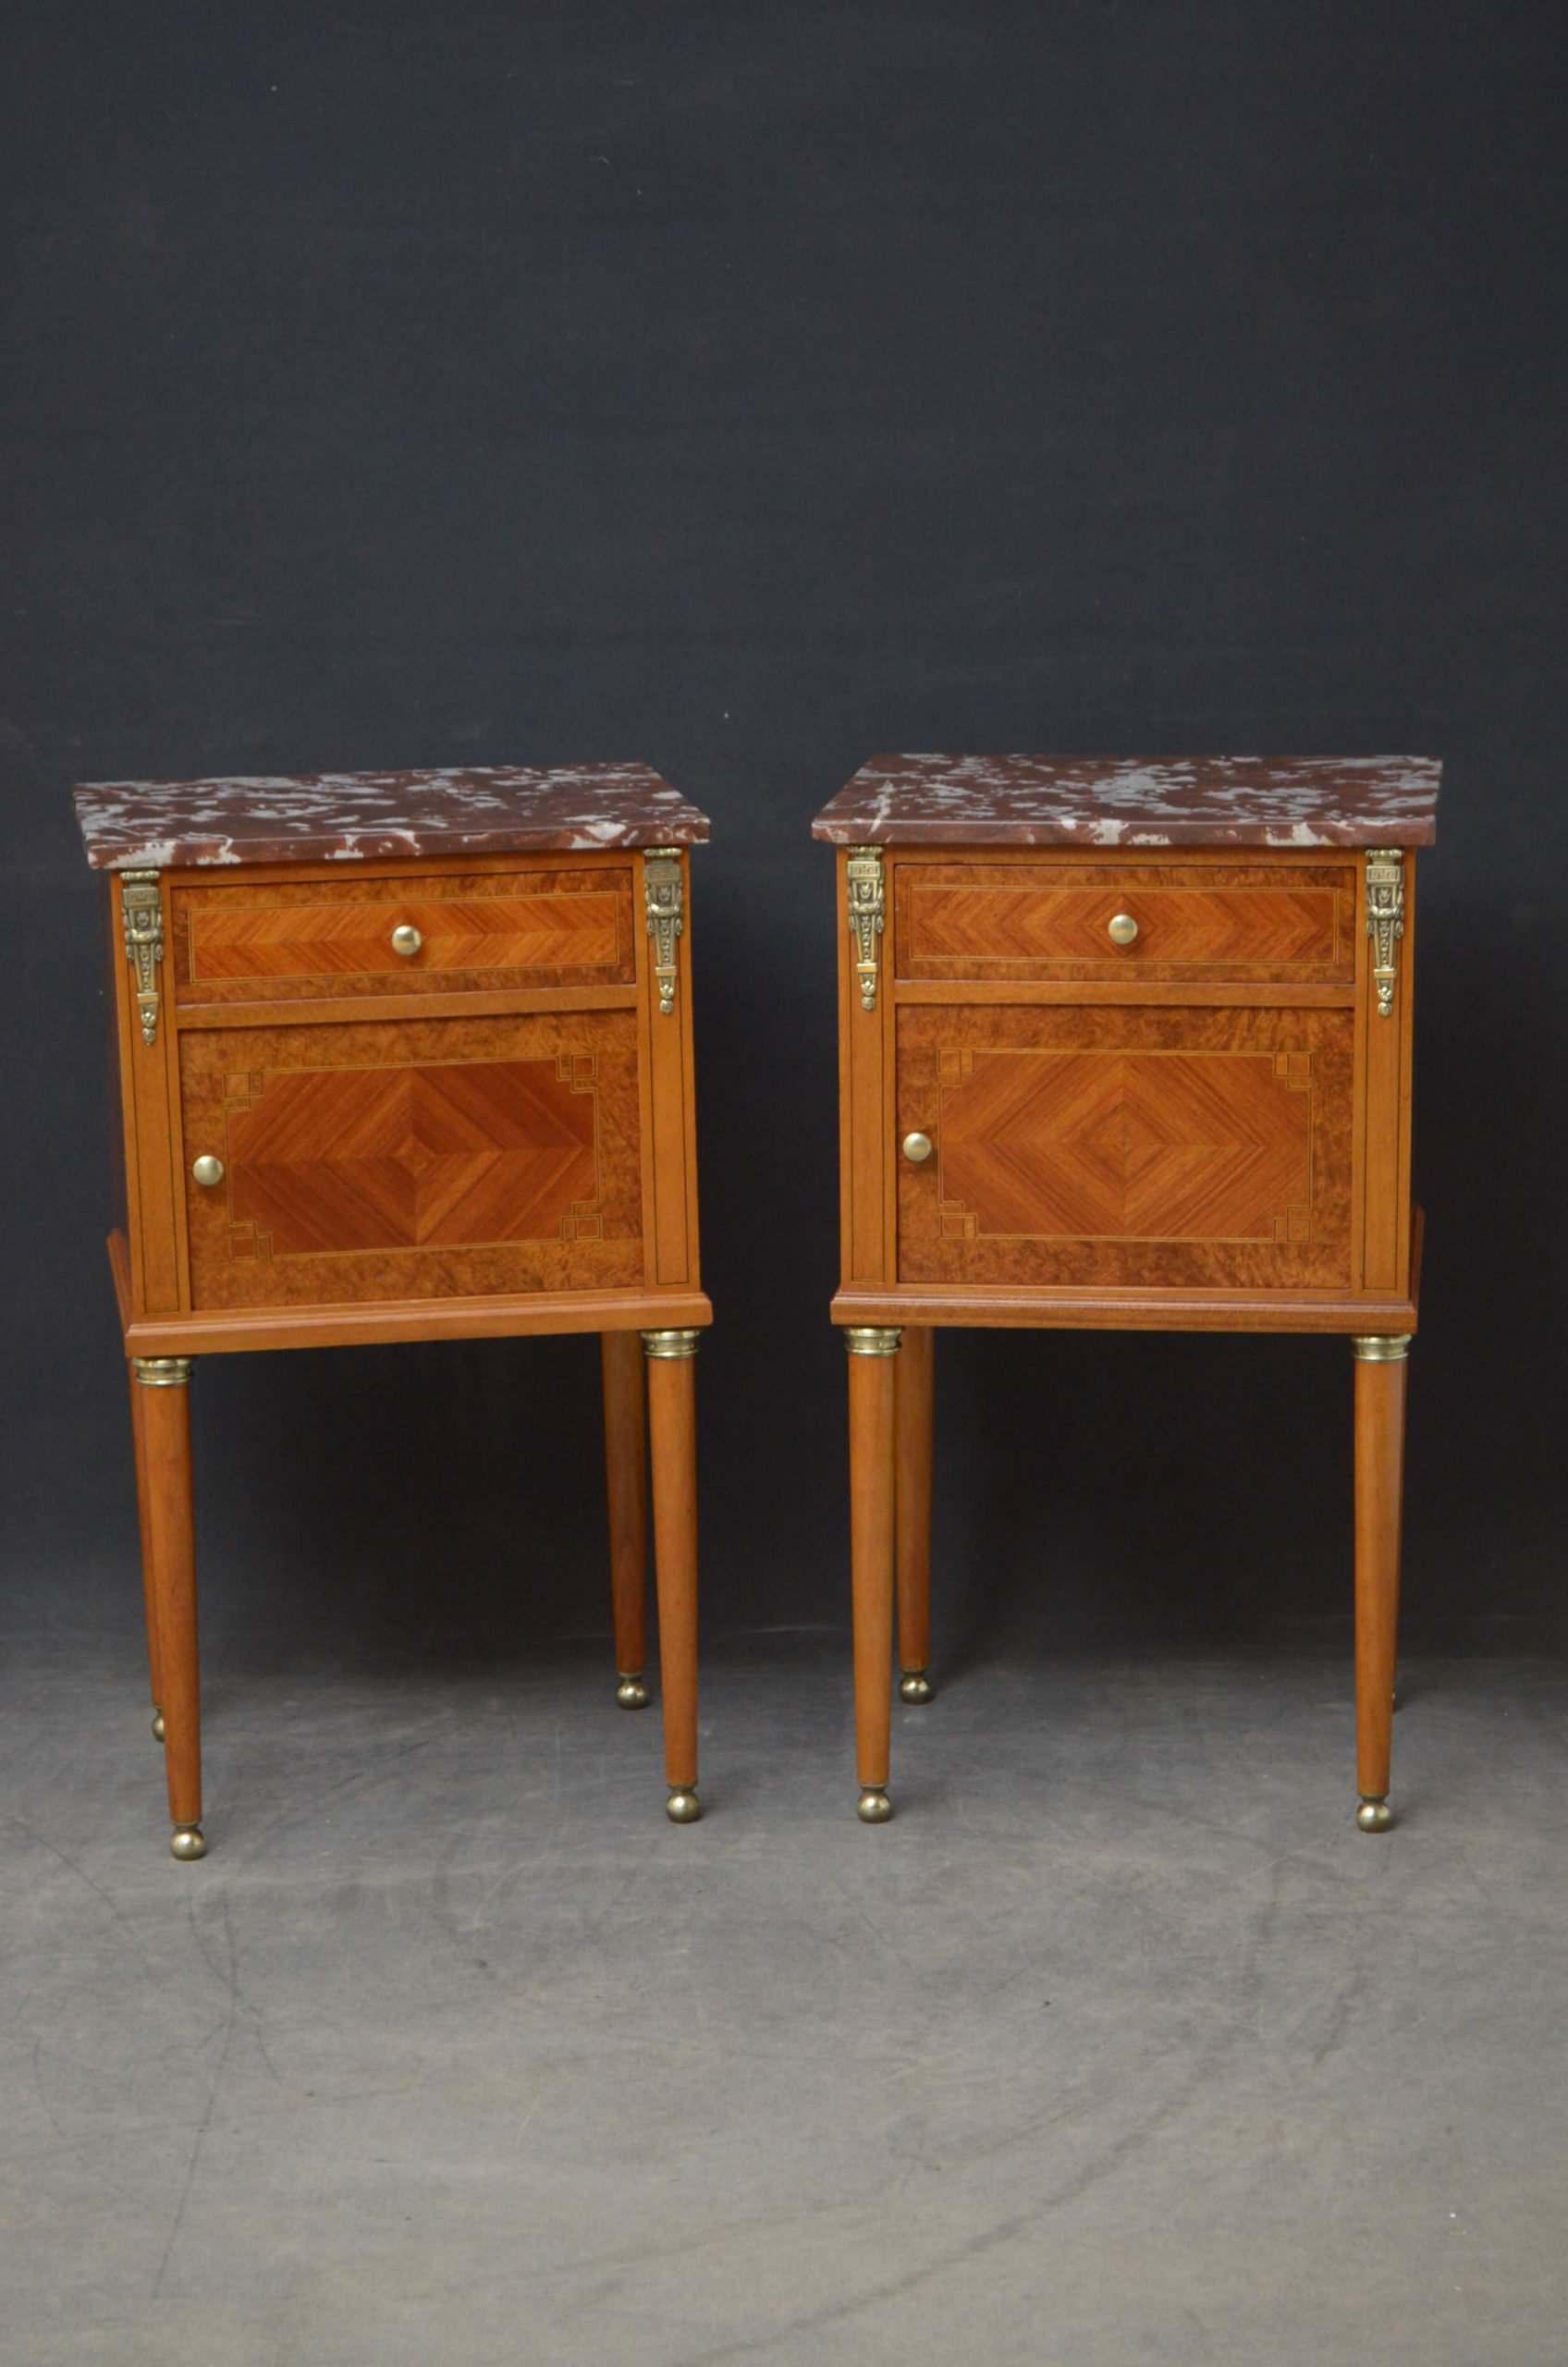 19th Century Pair of Bedside Cabinets